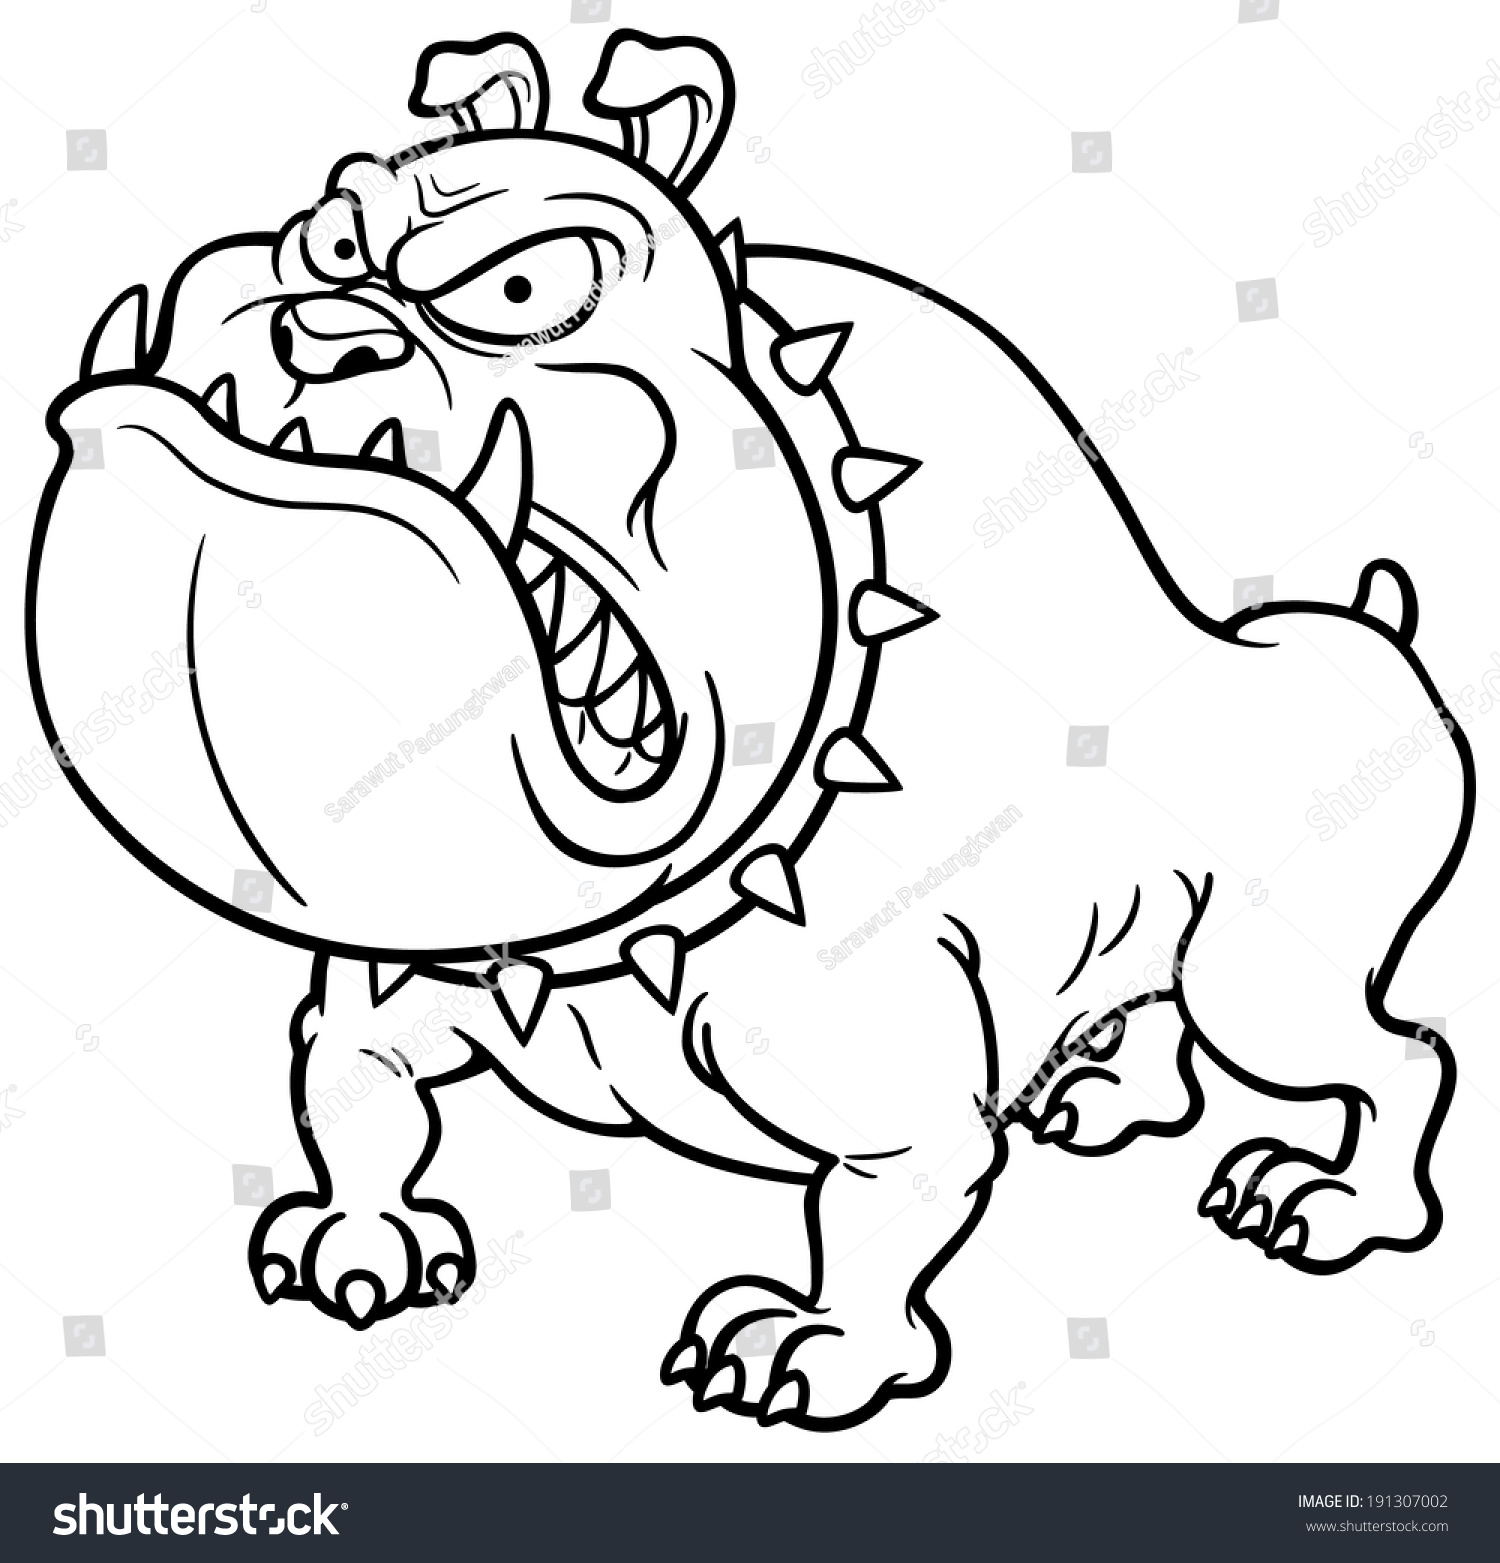 Vector Illustration Angry Dog Coloring Book Stock Vector 191307002 ...